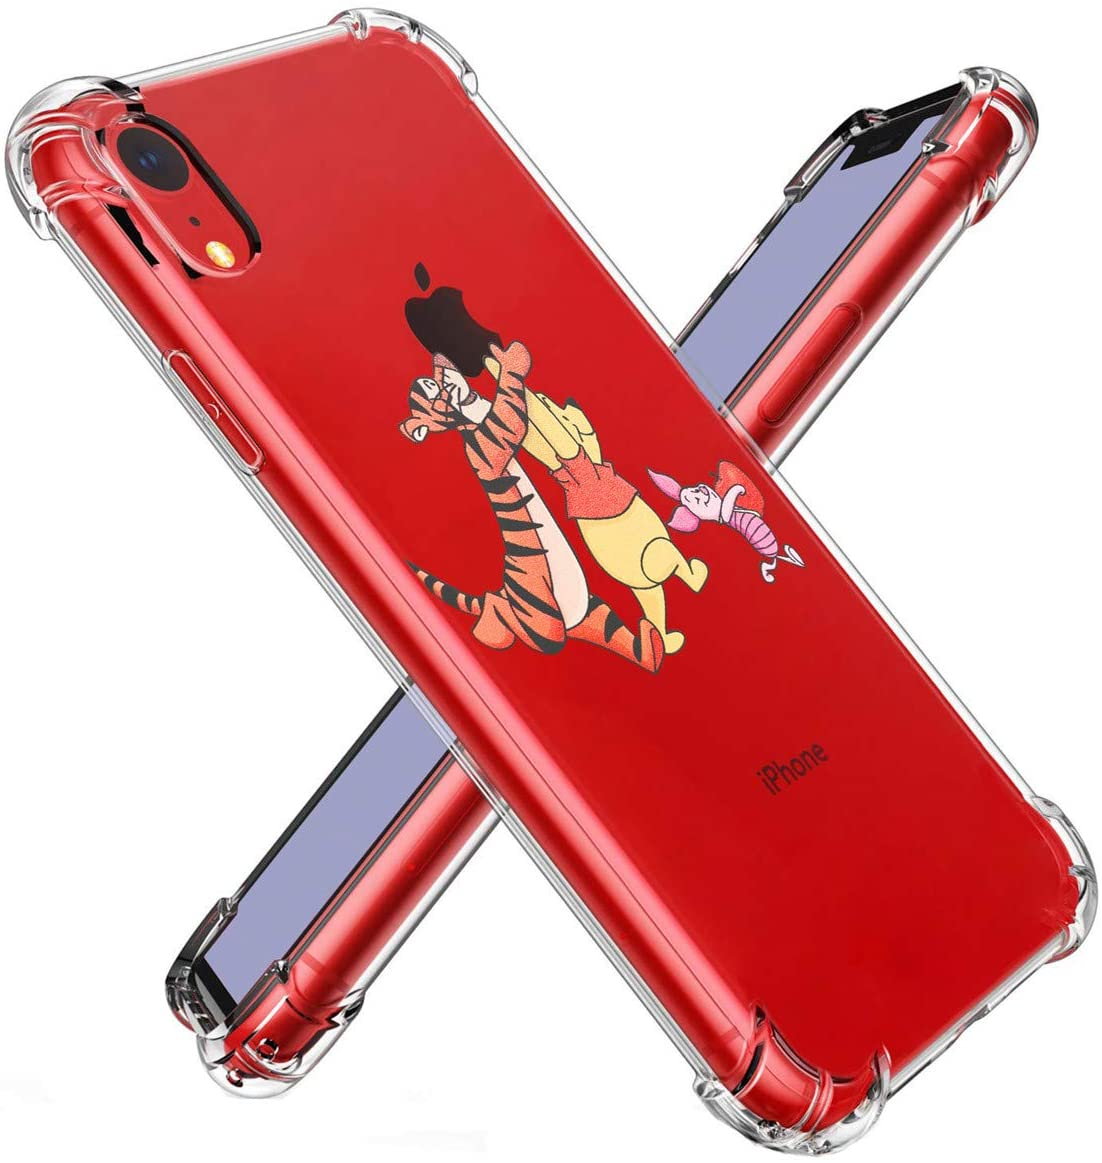 Allsky Case for iPhone XR 6.1